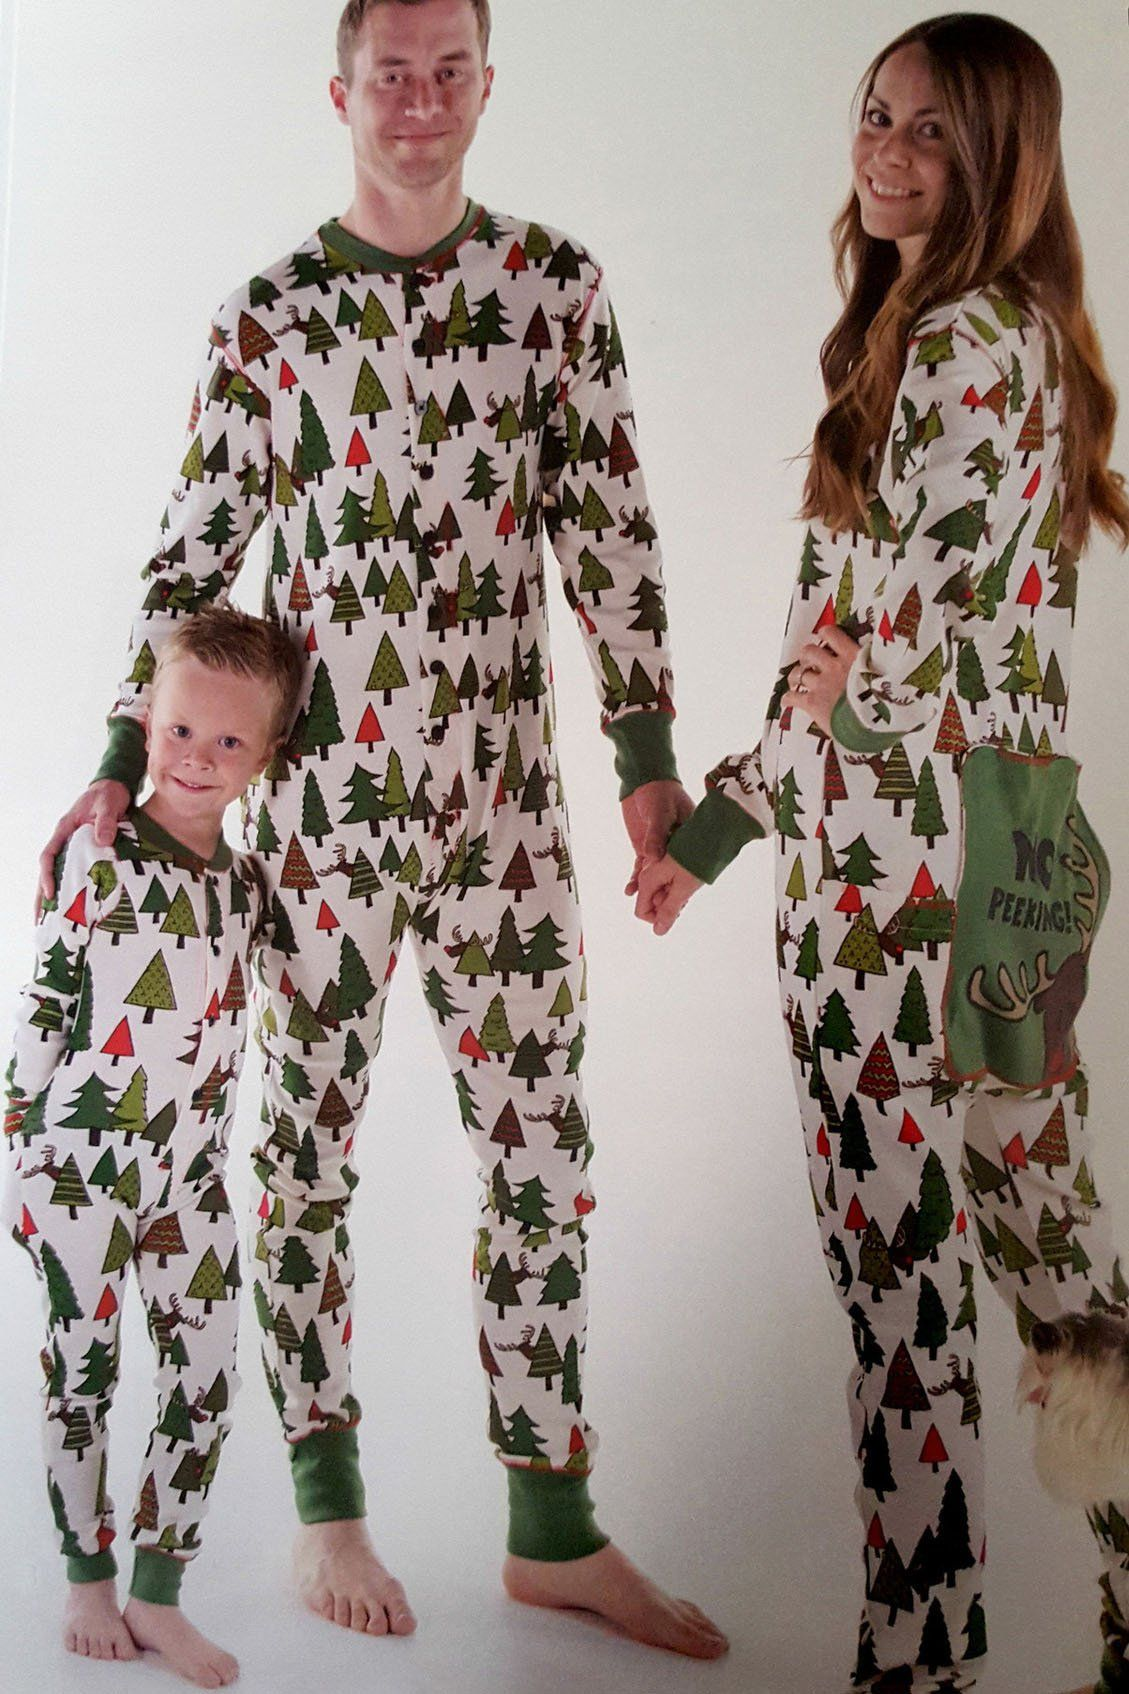 cf0416d3bf Reindeer Christmas Trees Family Matching Pajamas Set For Xmas ...